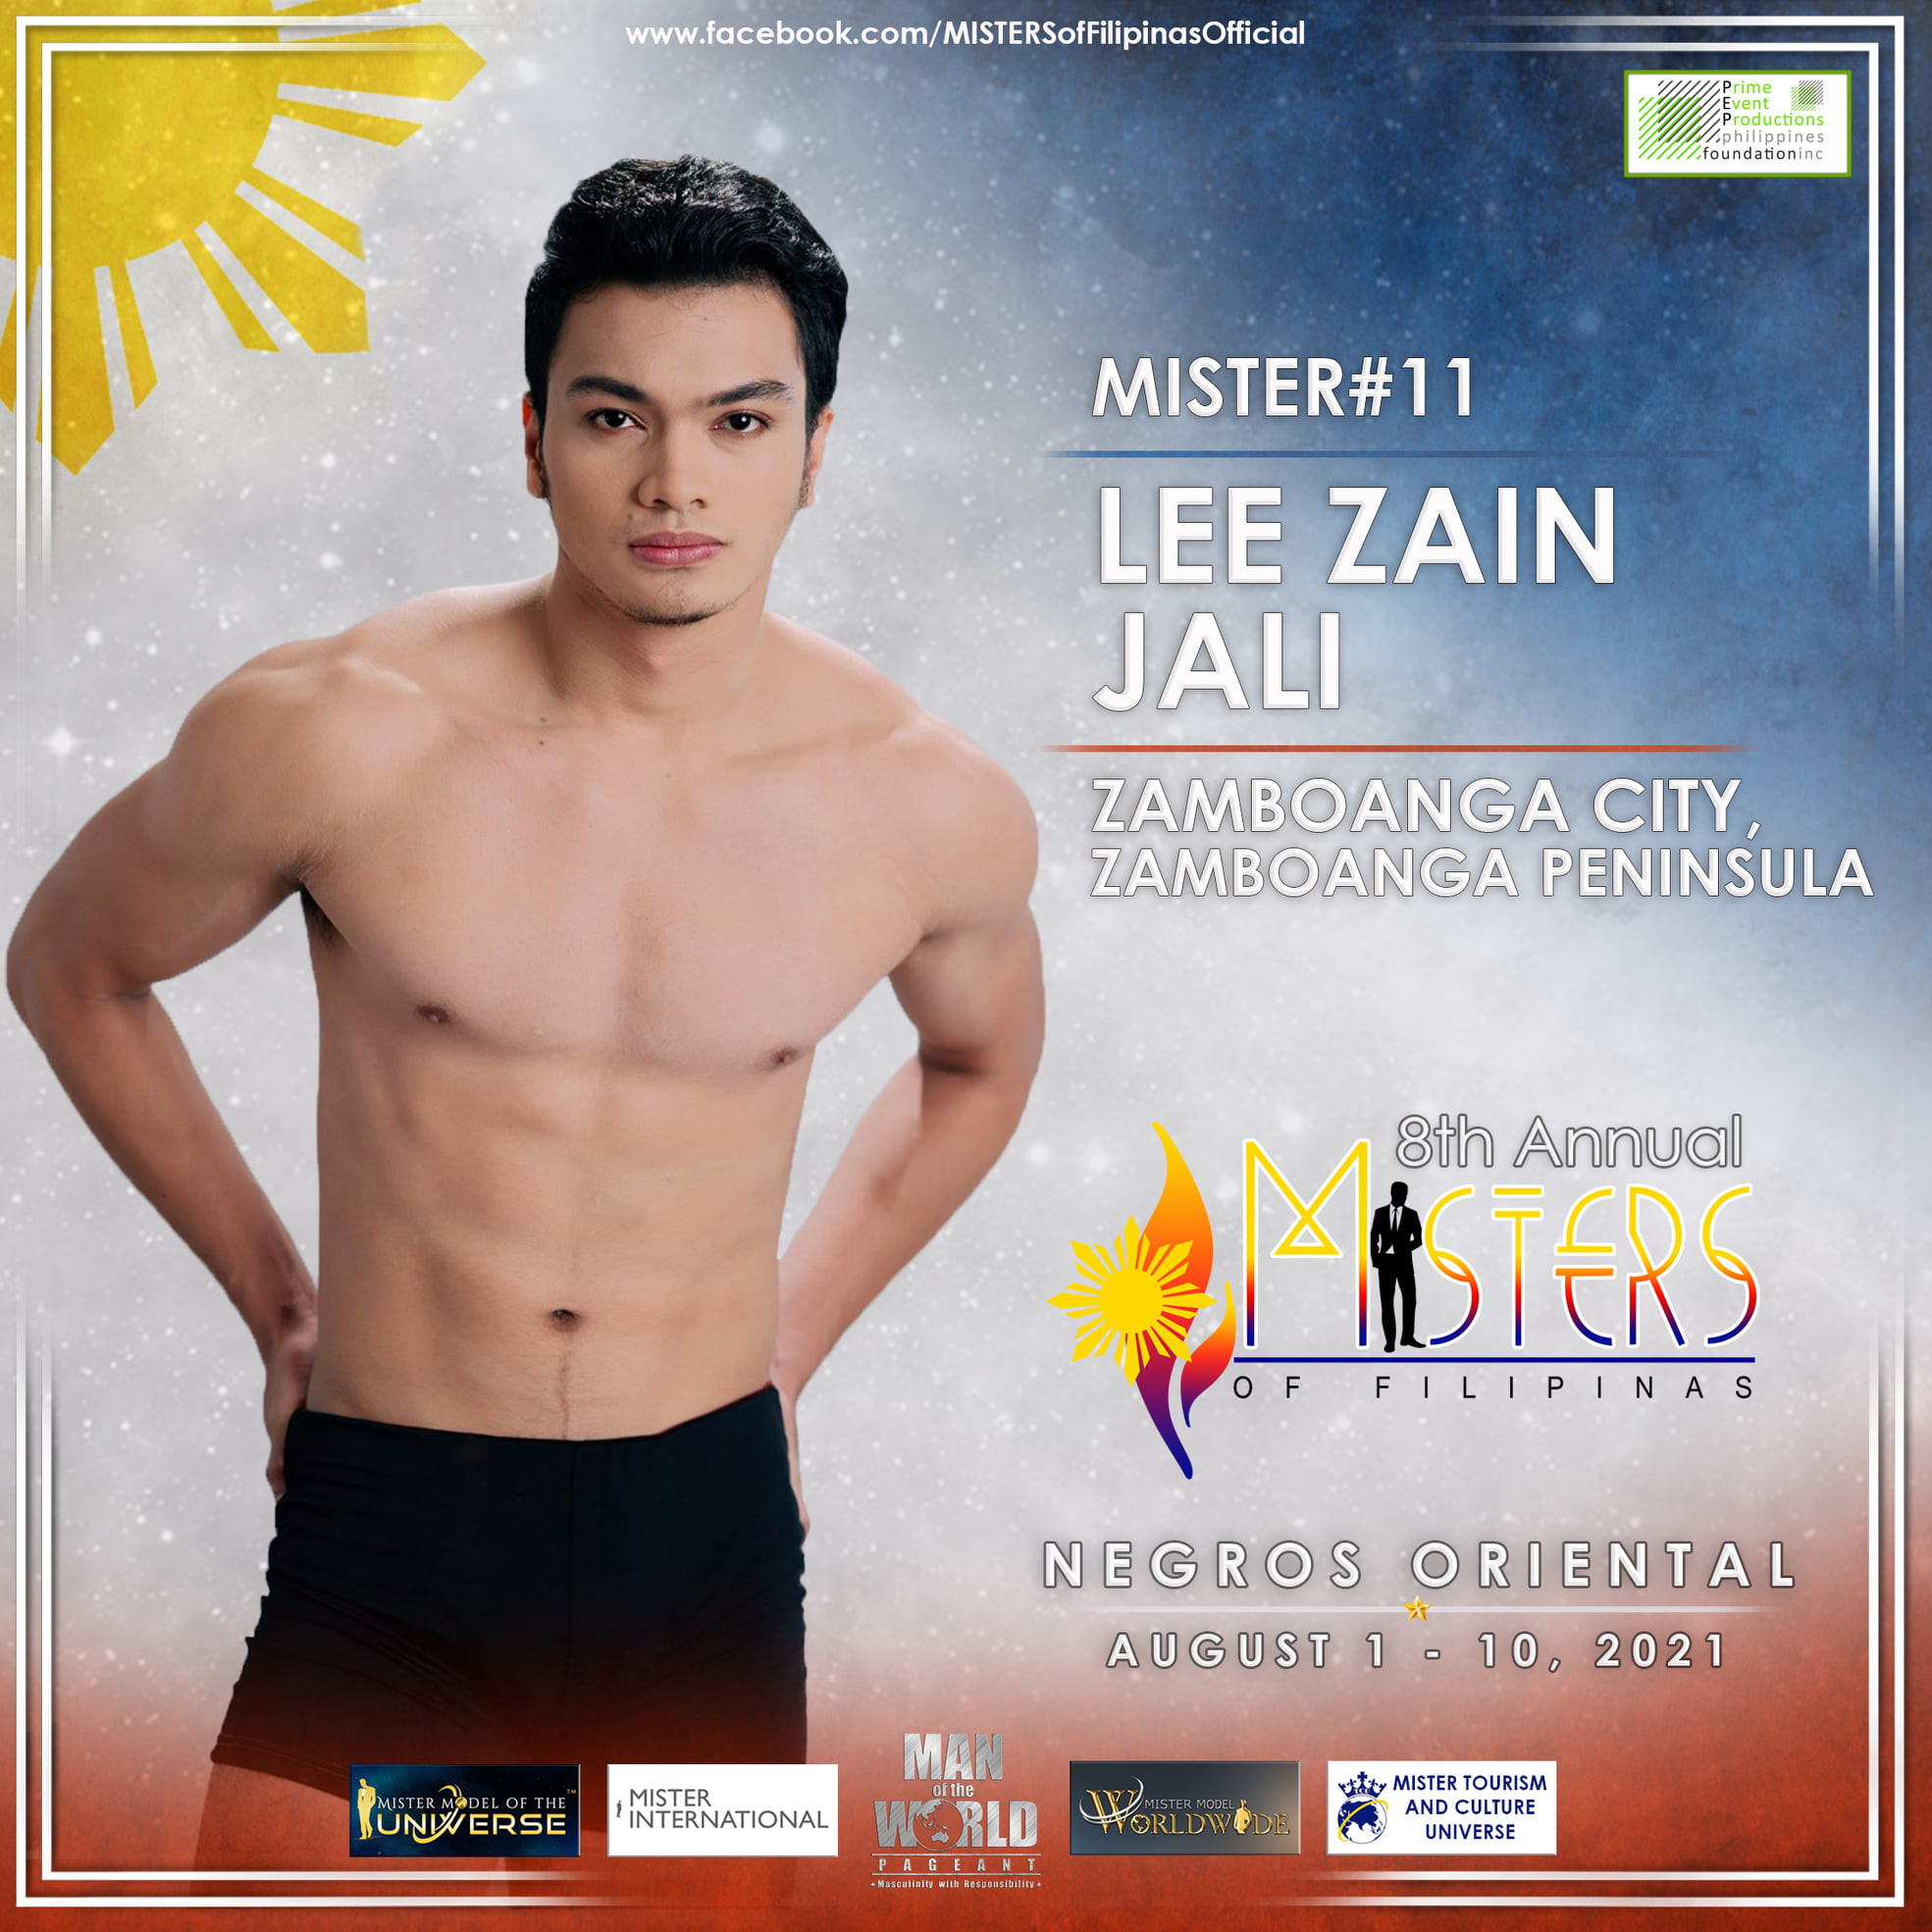 candidatos a misters of filipinas 2021. final: 27 agosto. OwBxlS